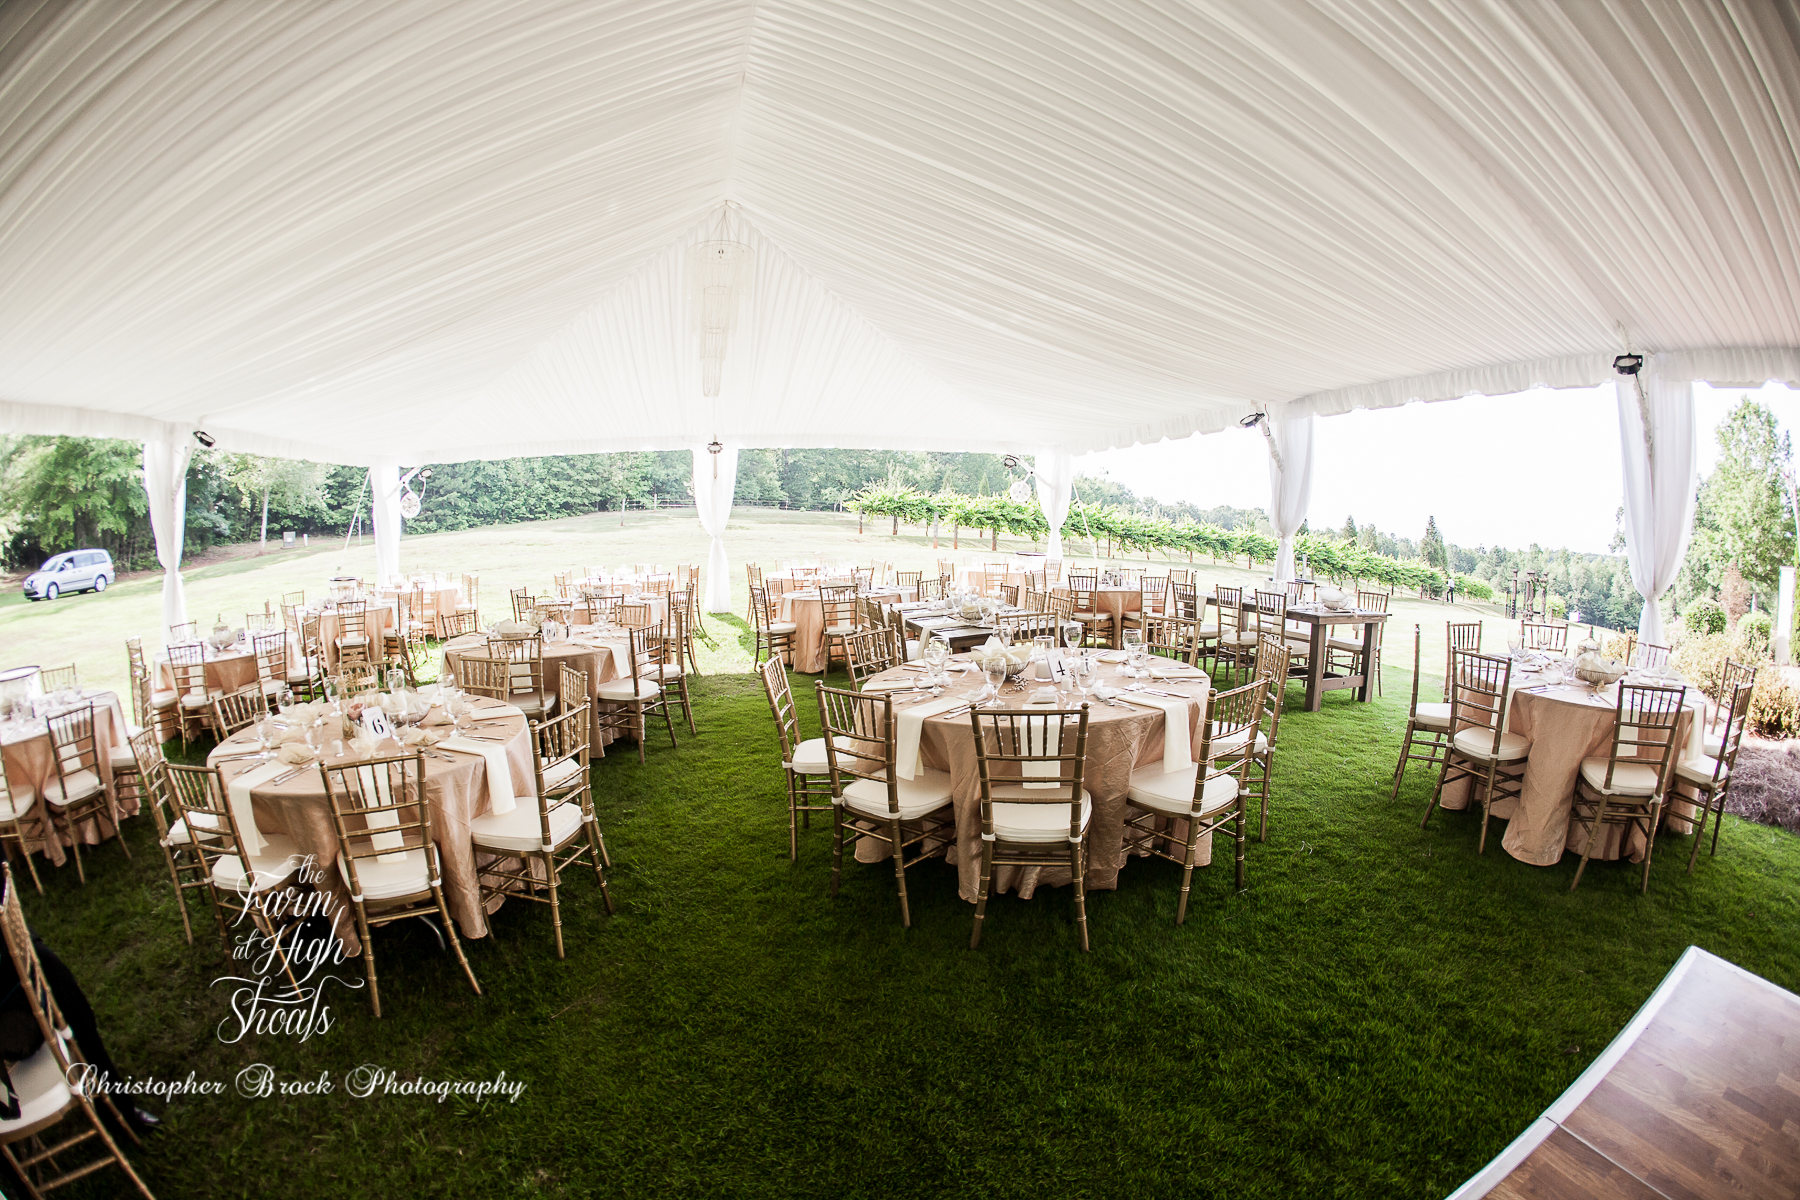 The Farm at High Shoals -- Atlanta Vineyard Wedding Venue (129 of 676)